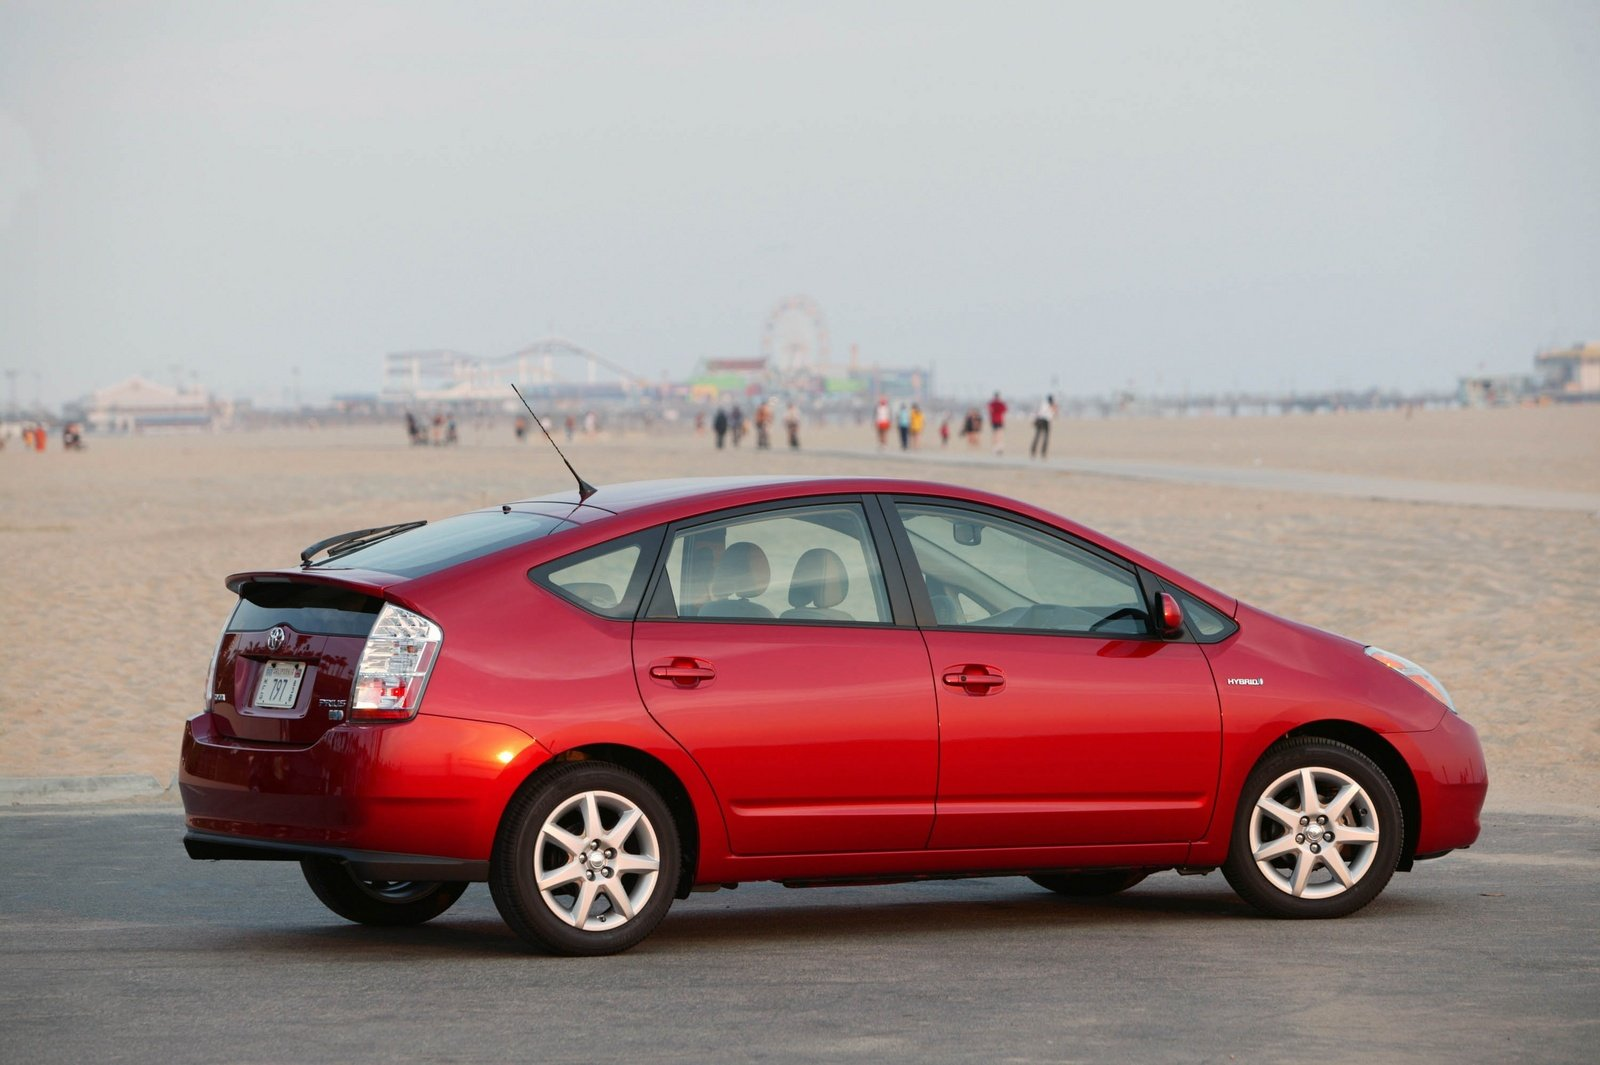 2007 toyota prius touring edition picture 94524 car review top speed. Black Bedroom Furniture Sets. Home Design Ideas